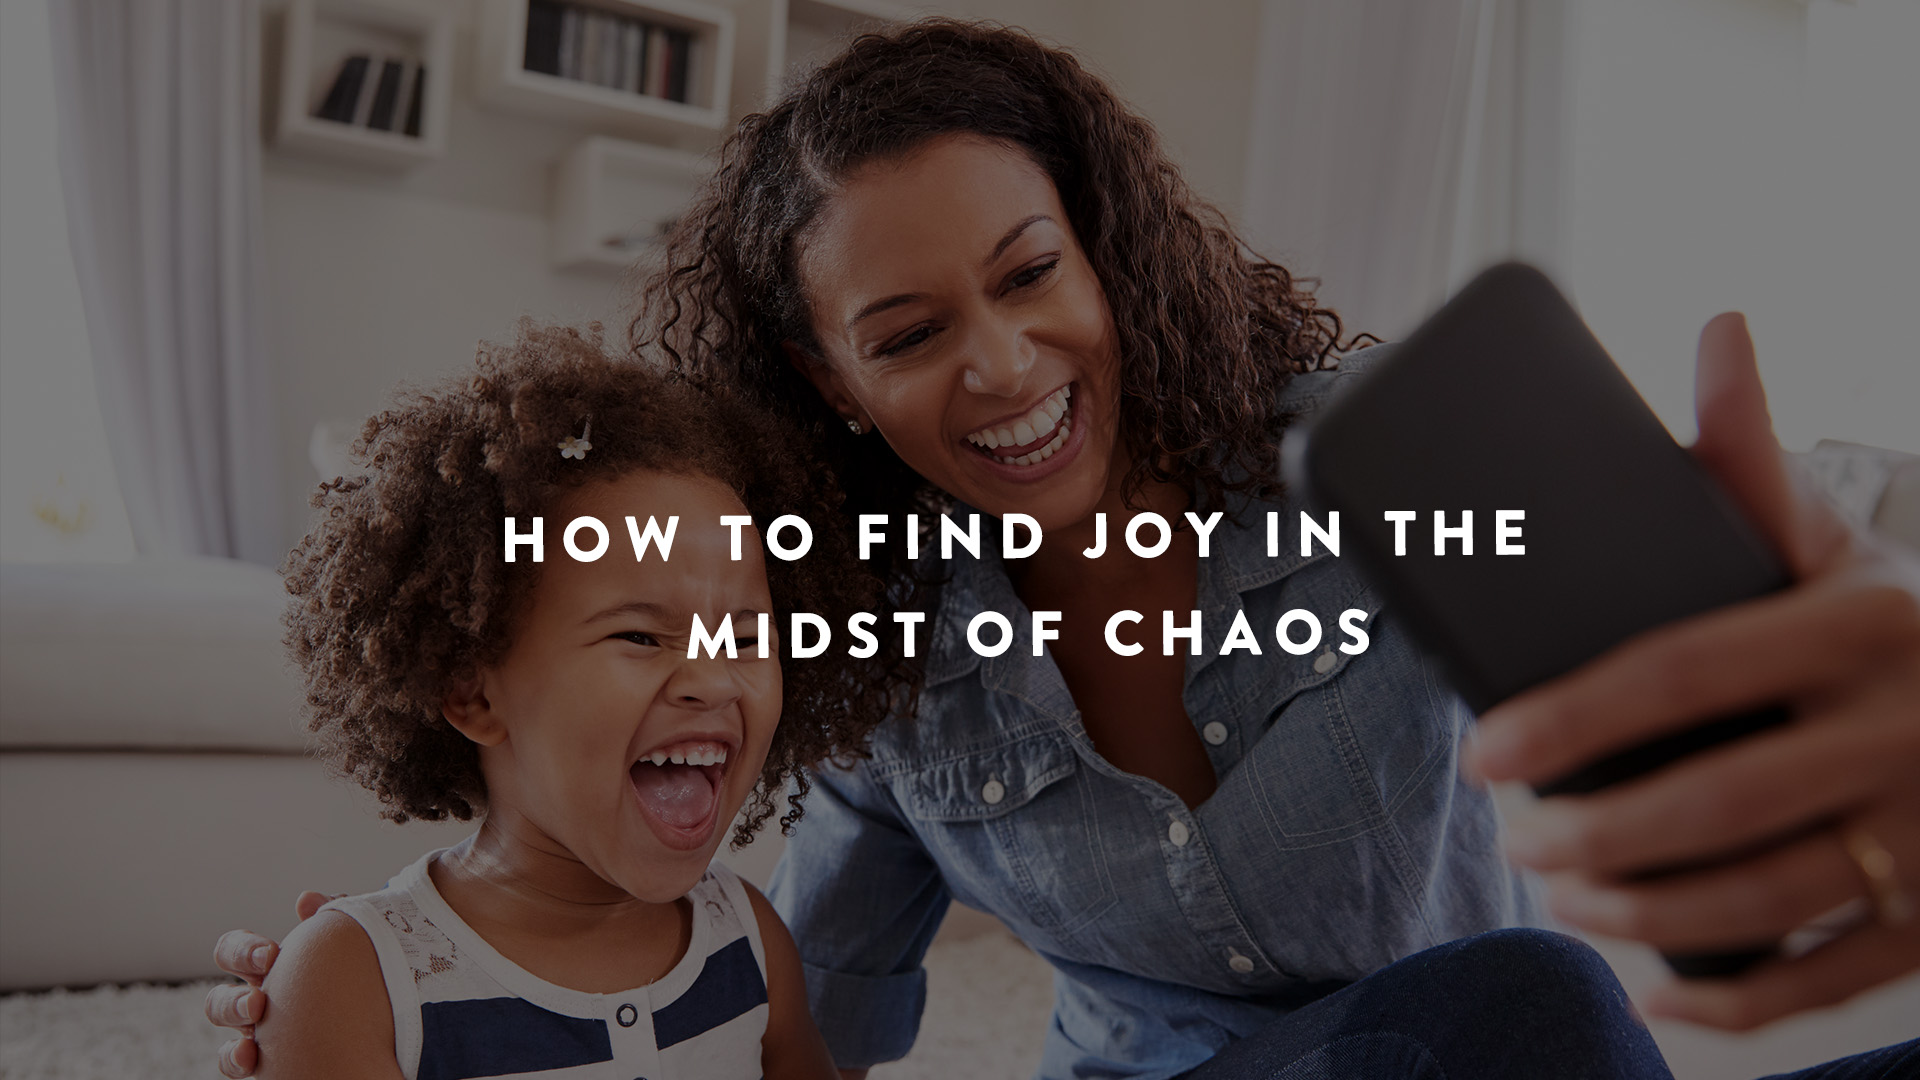 Finding joy in the midst of chaos